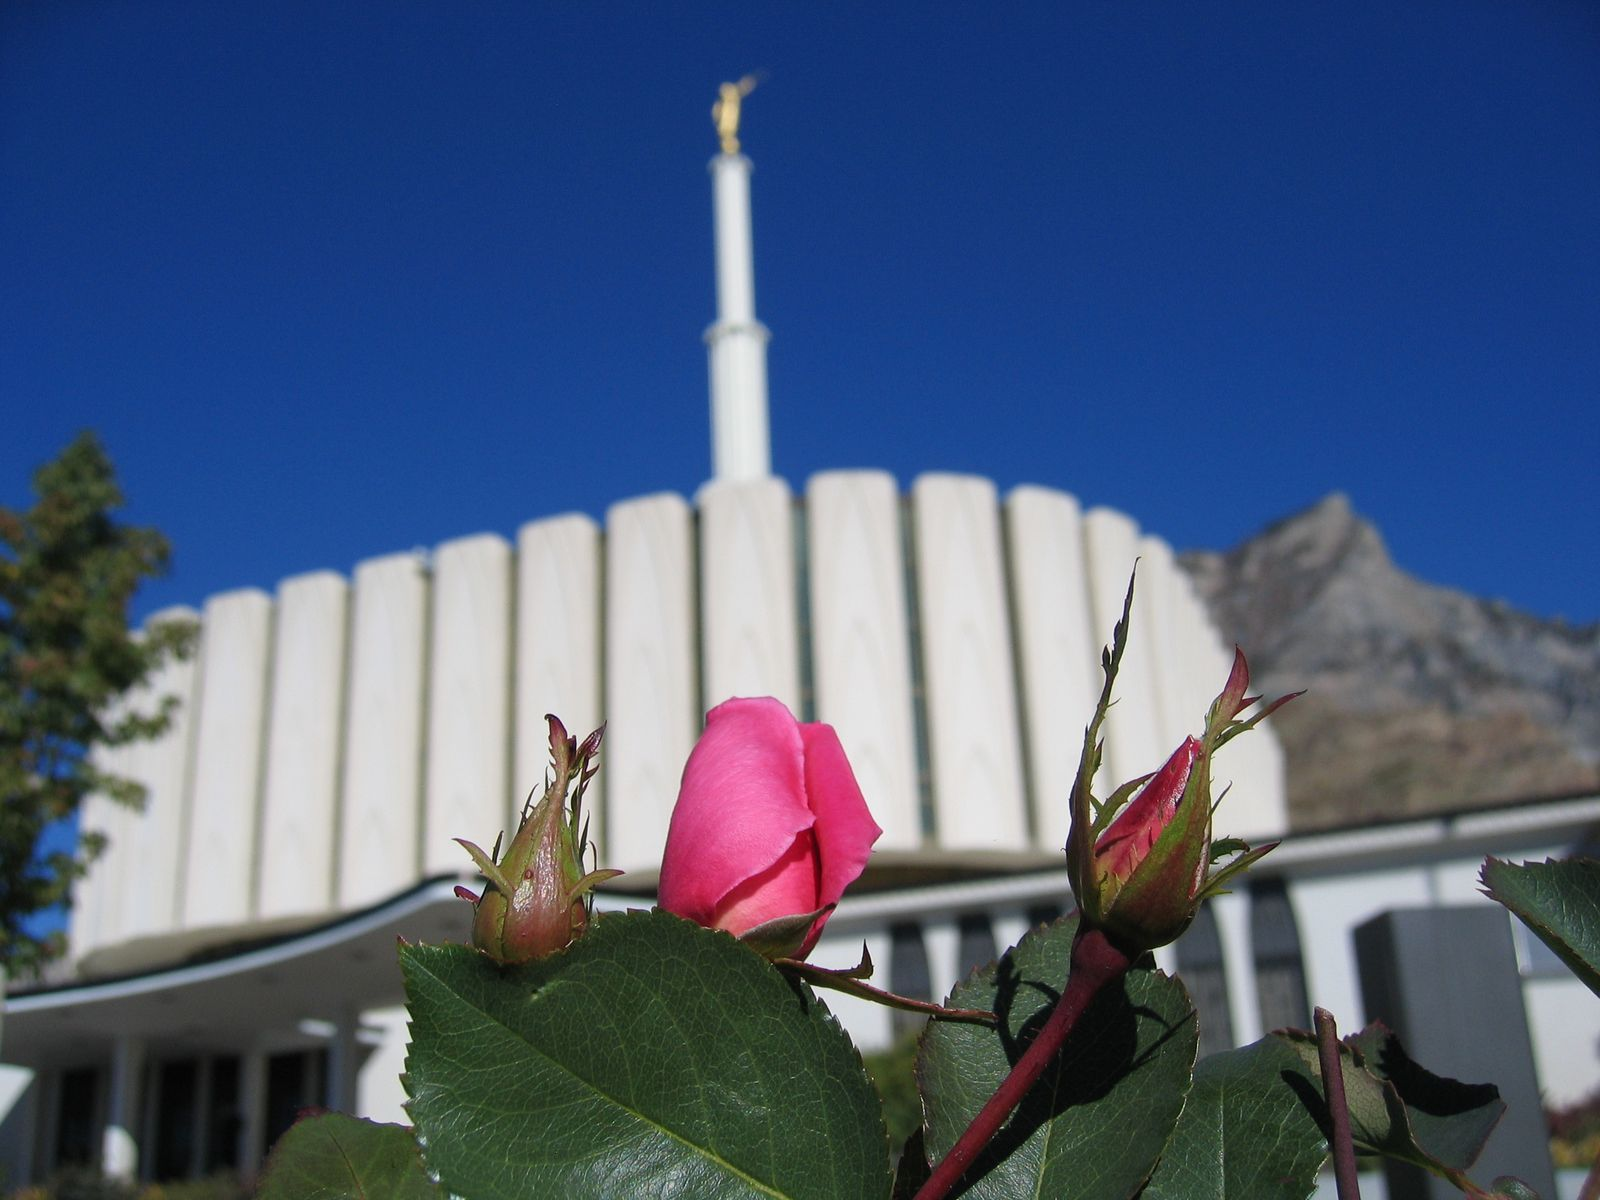 Buds at the Provo Temple